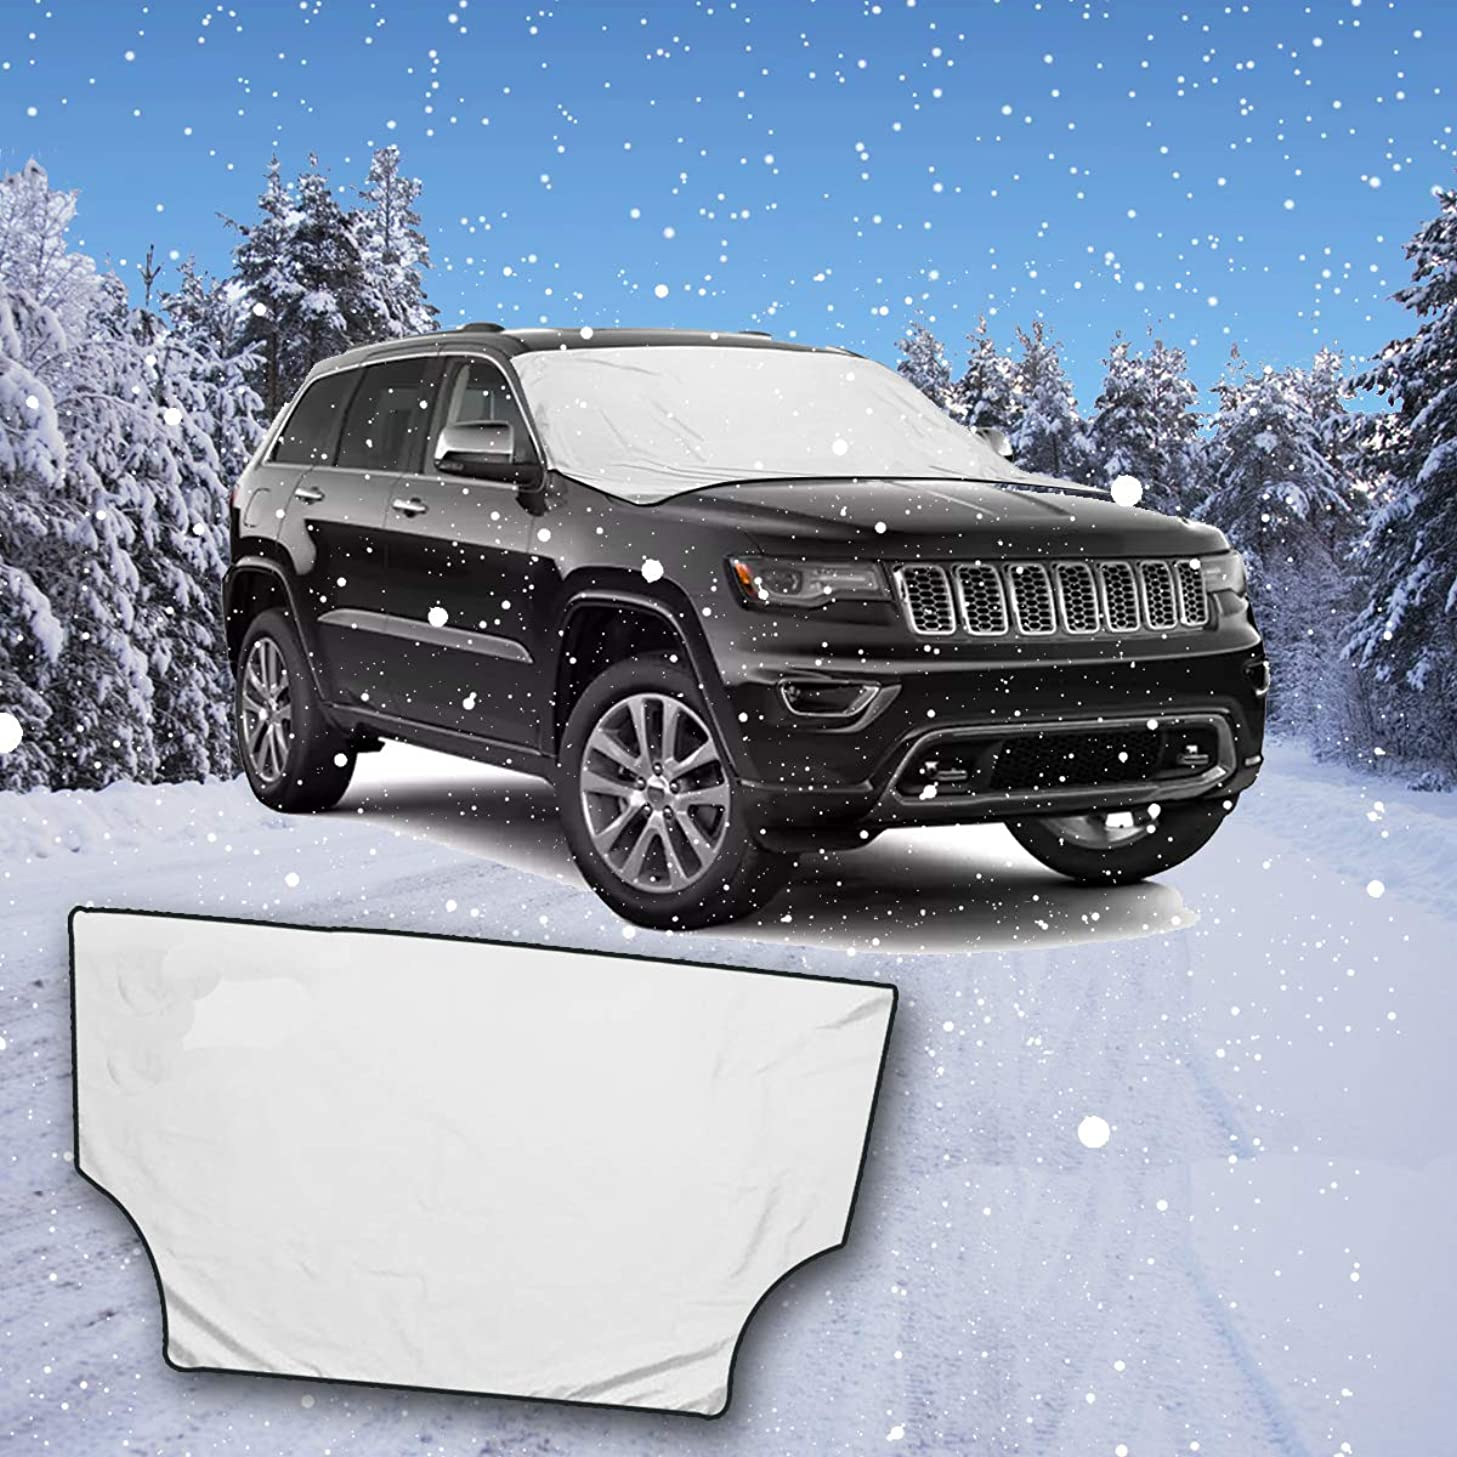 VaygWay Magnetic Car Snow Cover- Windshield Frost Ice Snow Protector- SUV Exterior All Weather Frost Guard-Waterproof Clean Reversible Car Cover